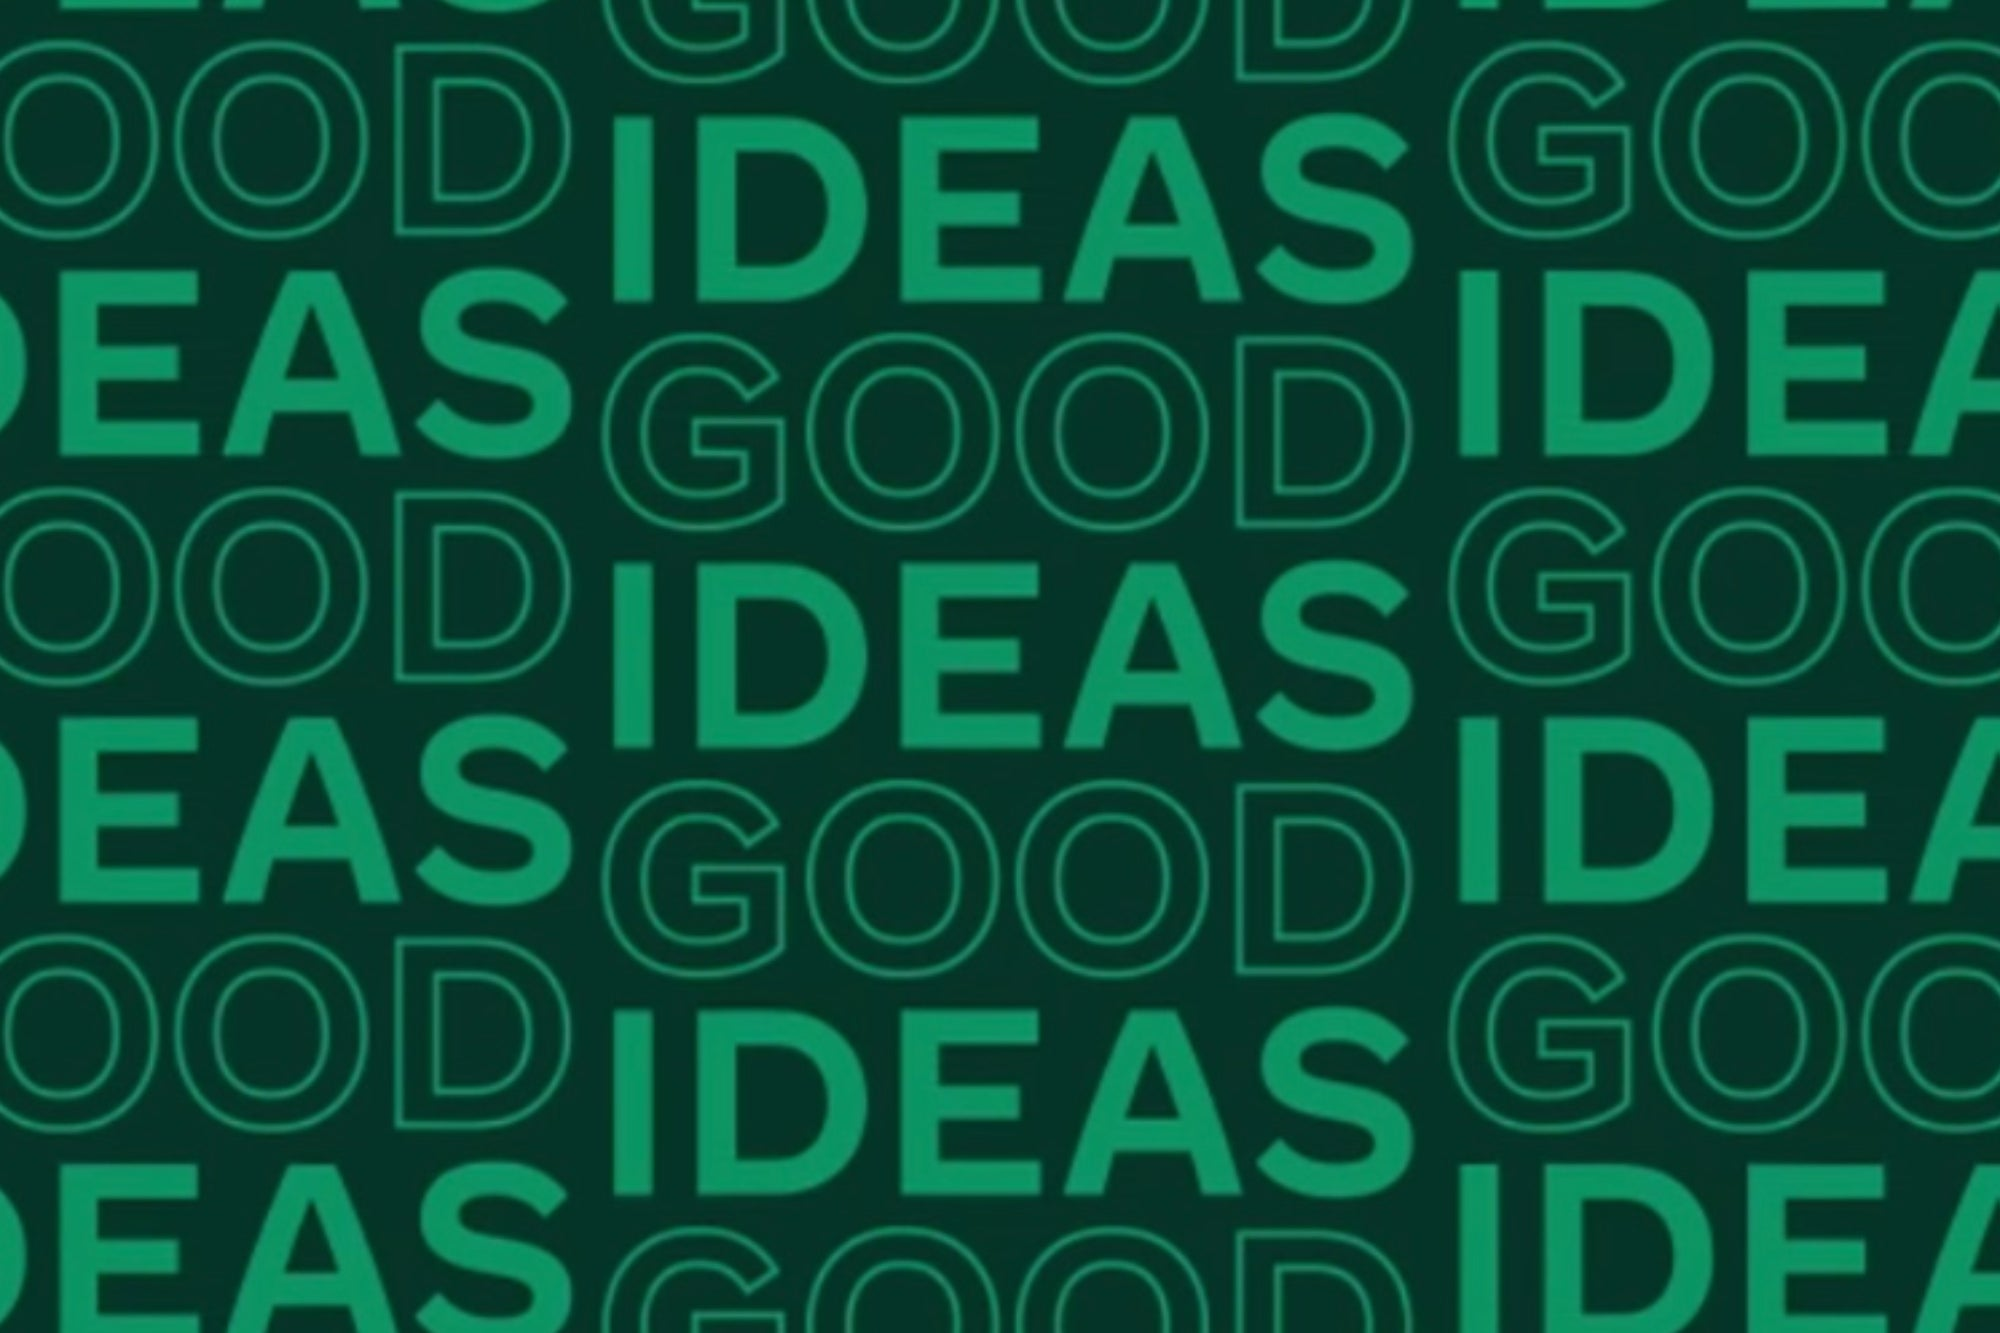 Here's What I Learned at the Facebook Good Ideas Festival